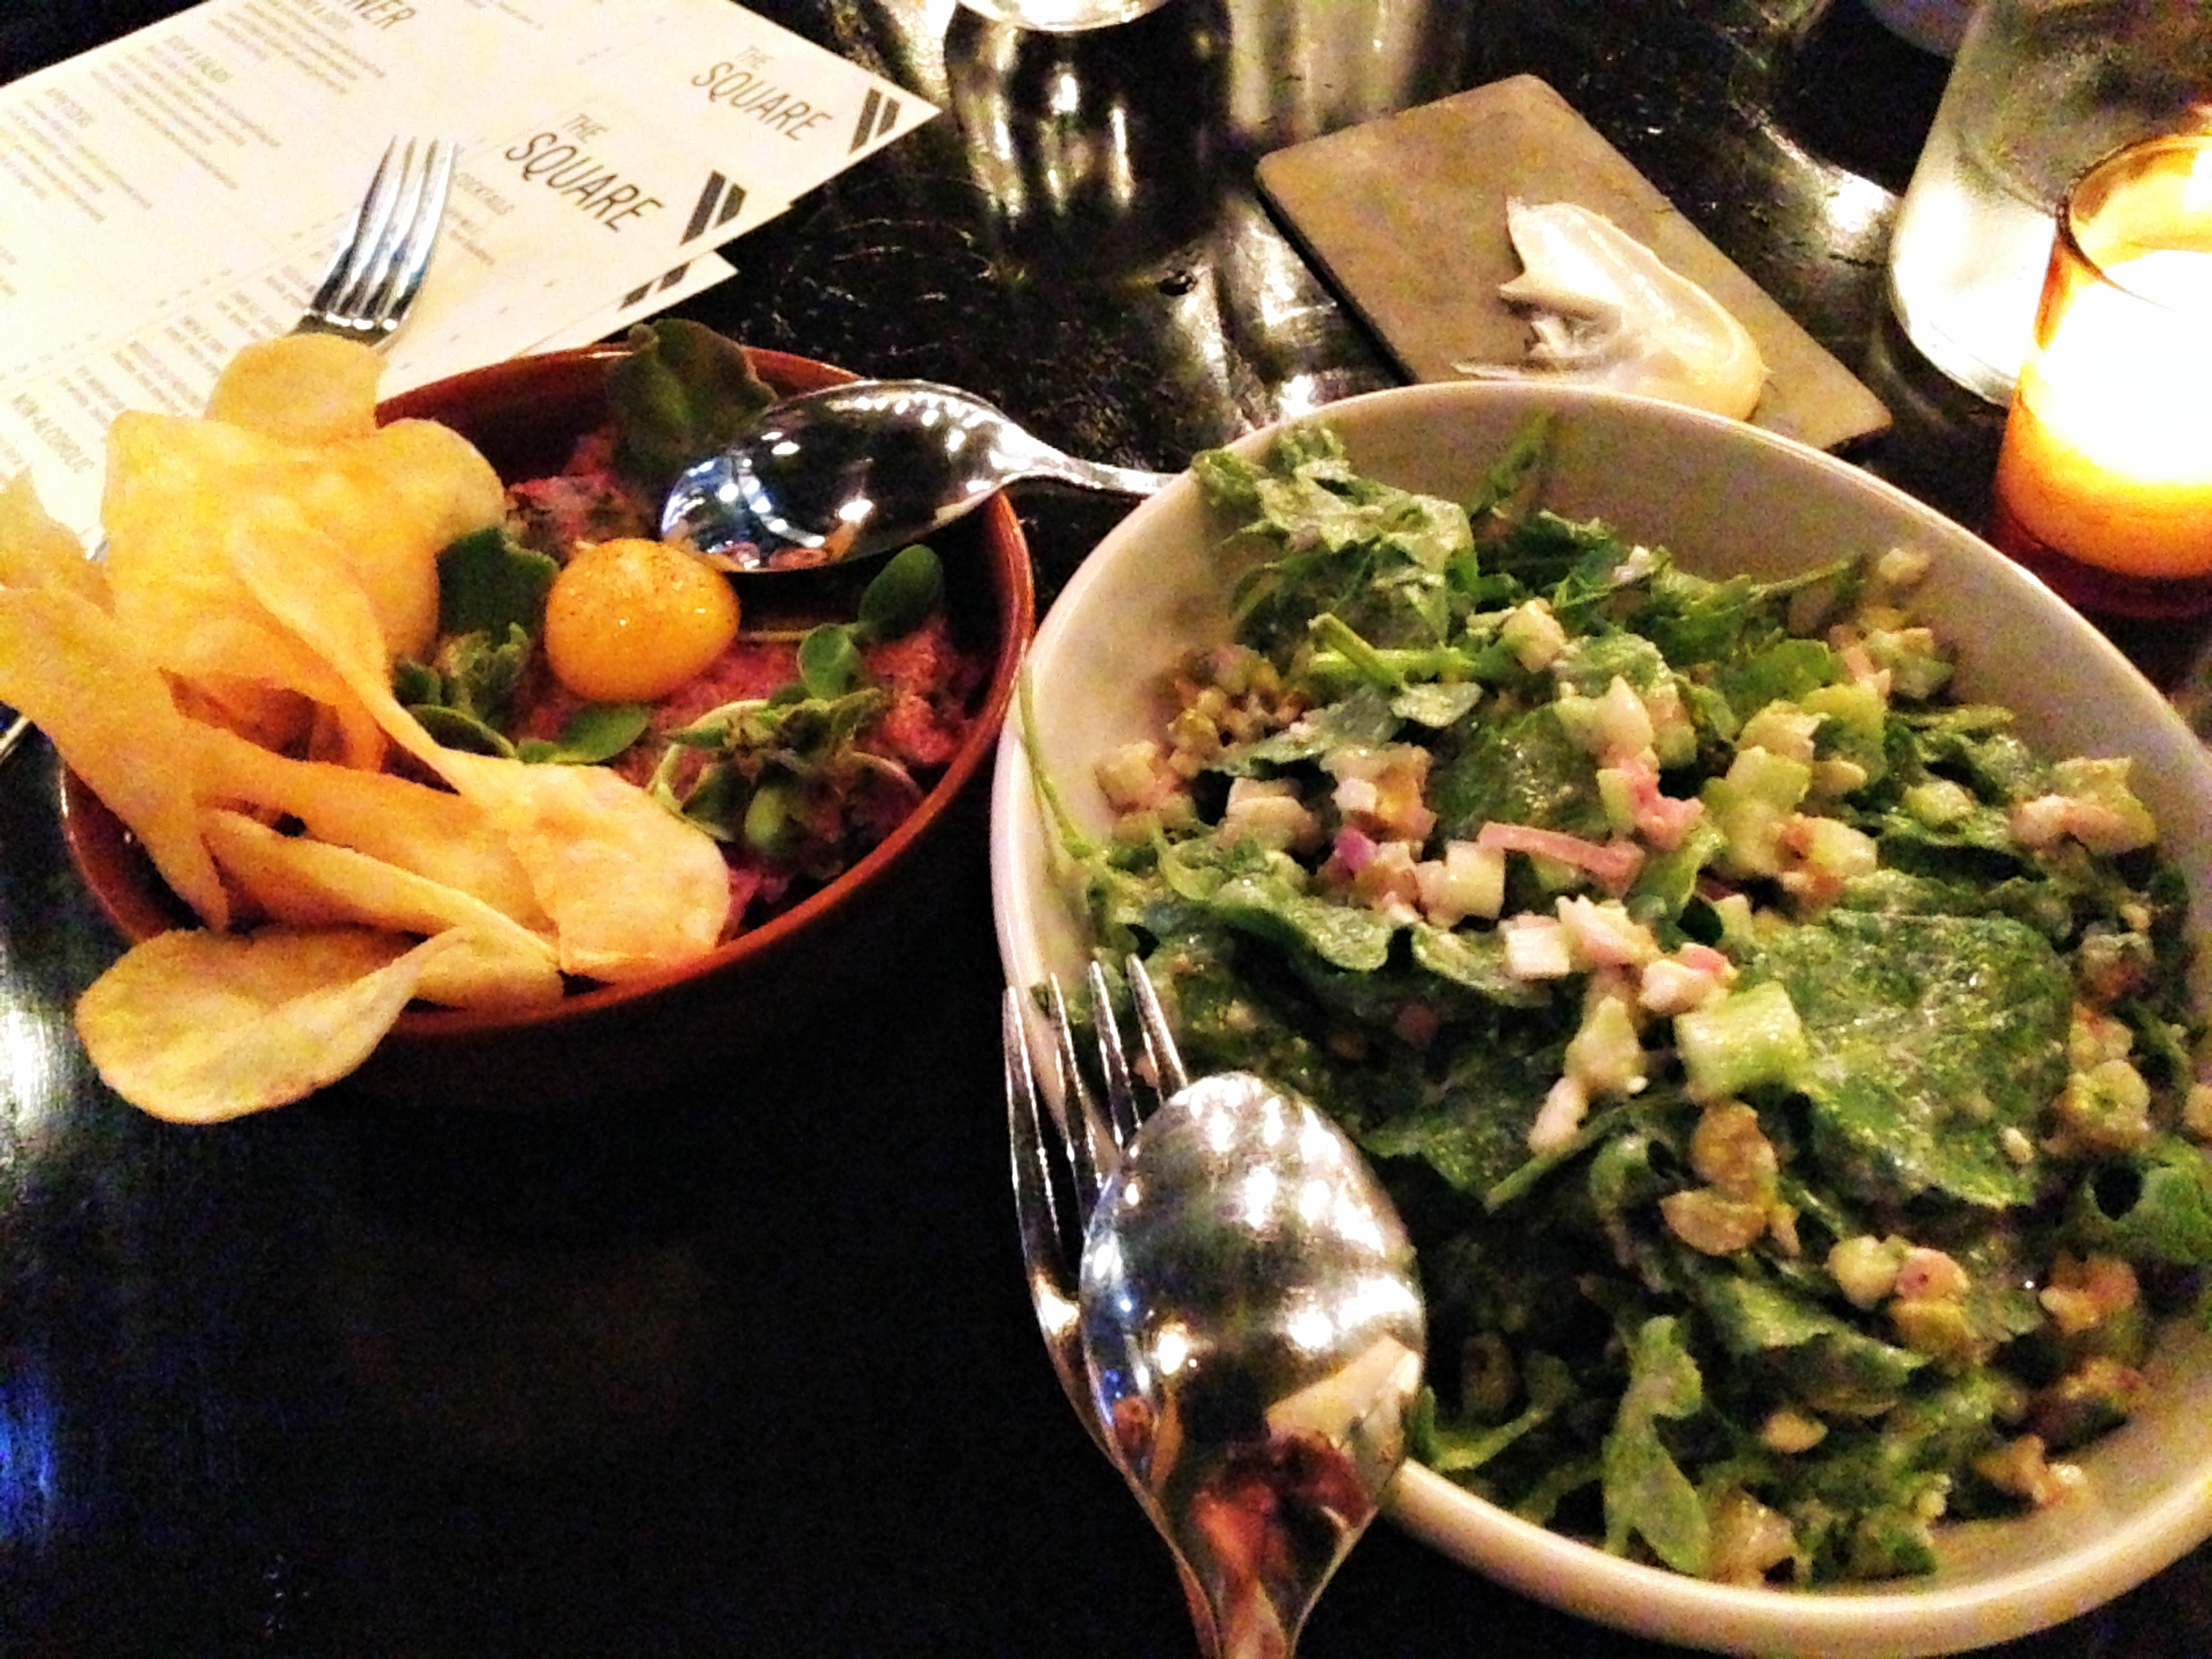 Beef tartare and kale salad